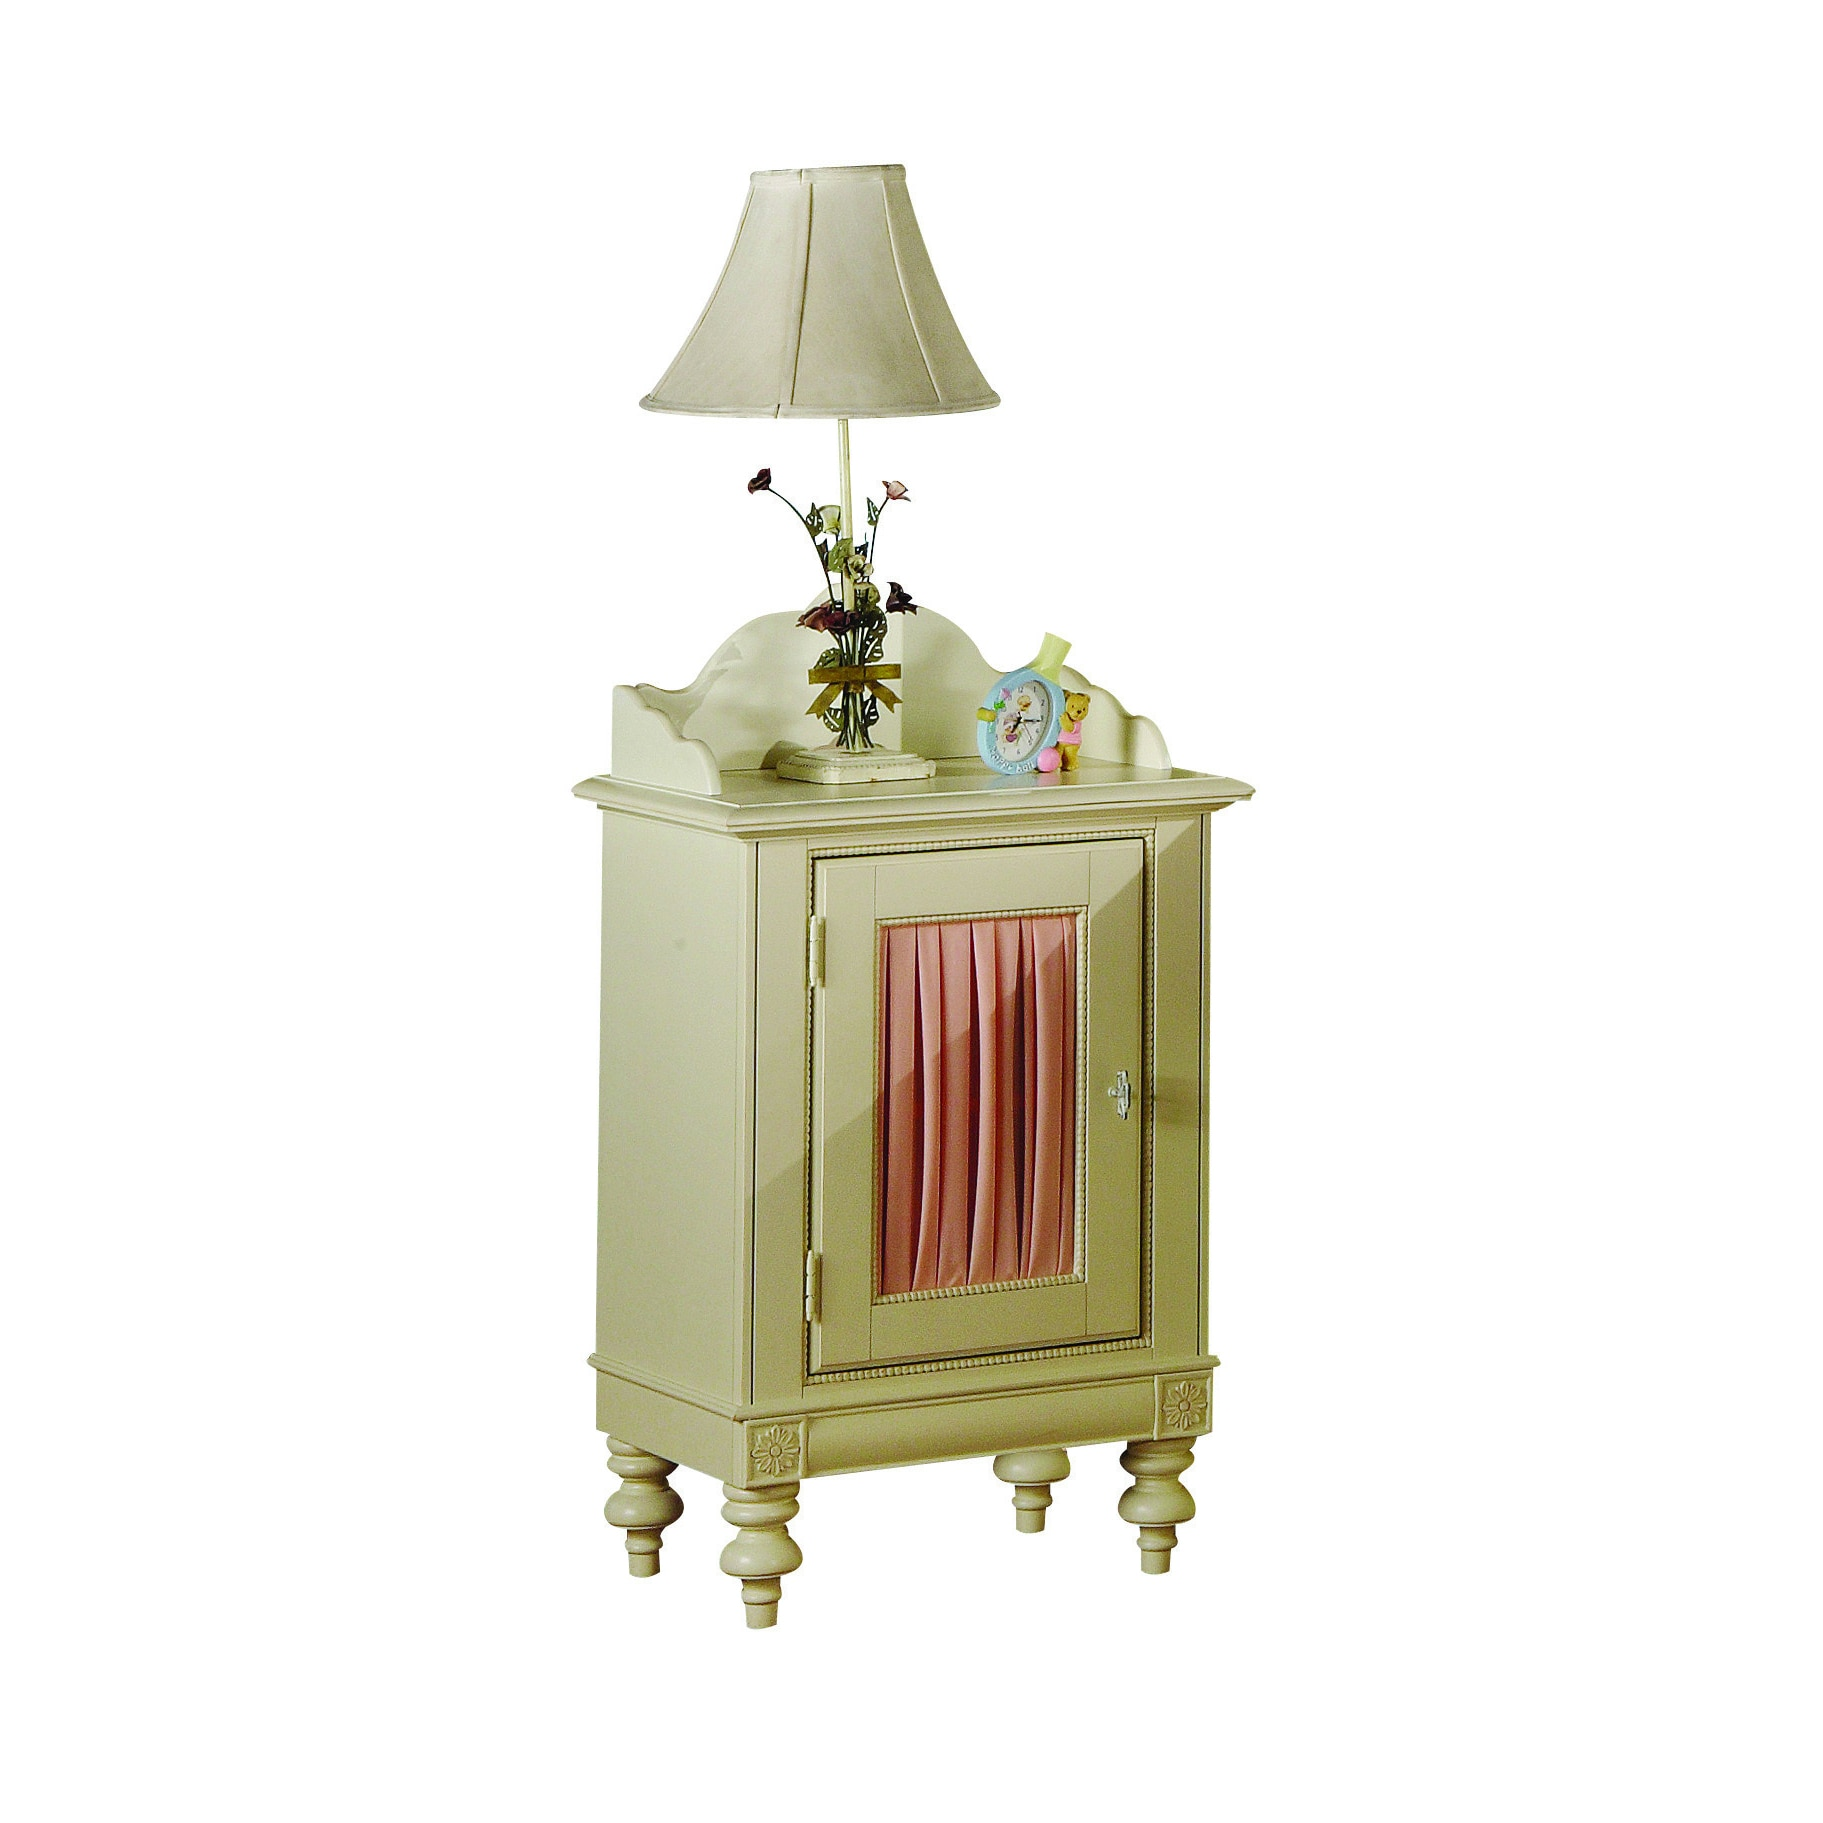 Doll House Cream Finish Nightstand - Free Shipping Today - Overstock.com - 14344680